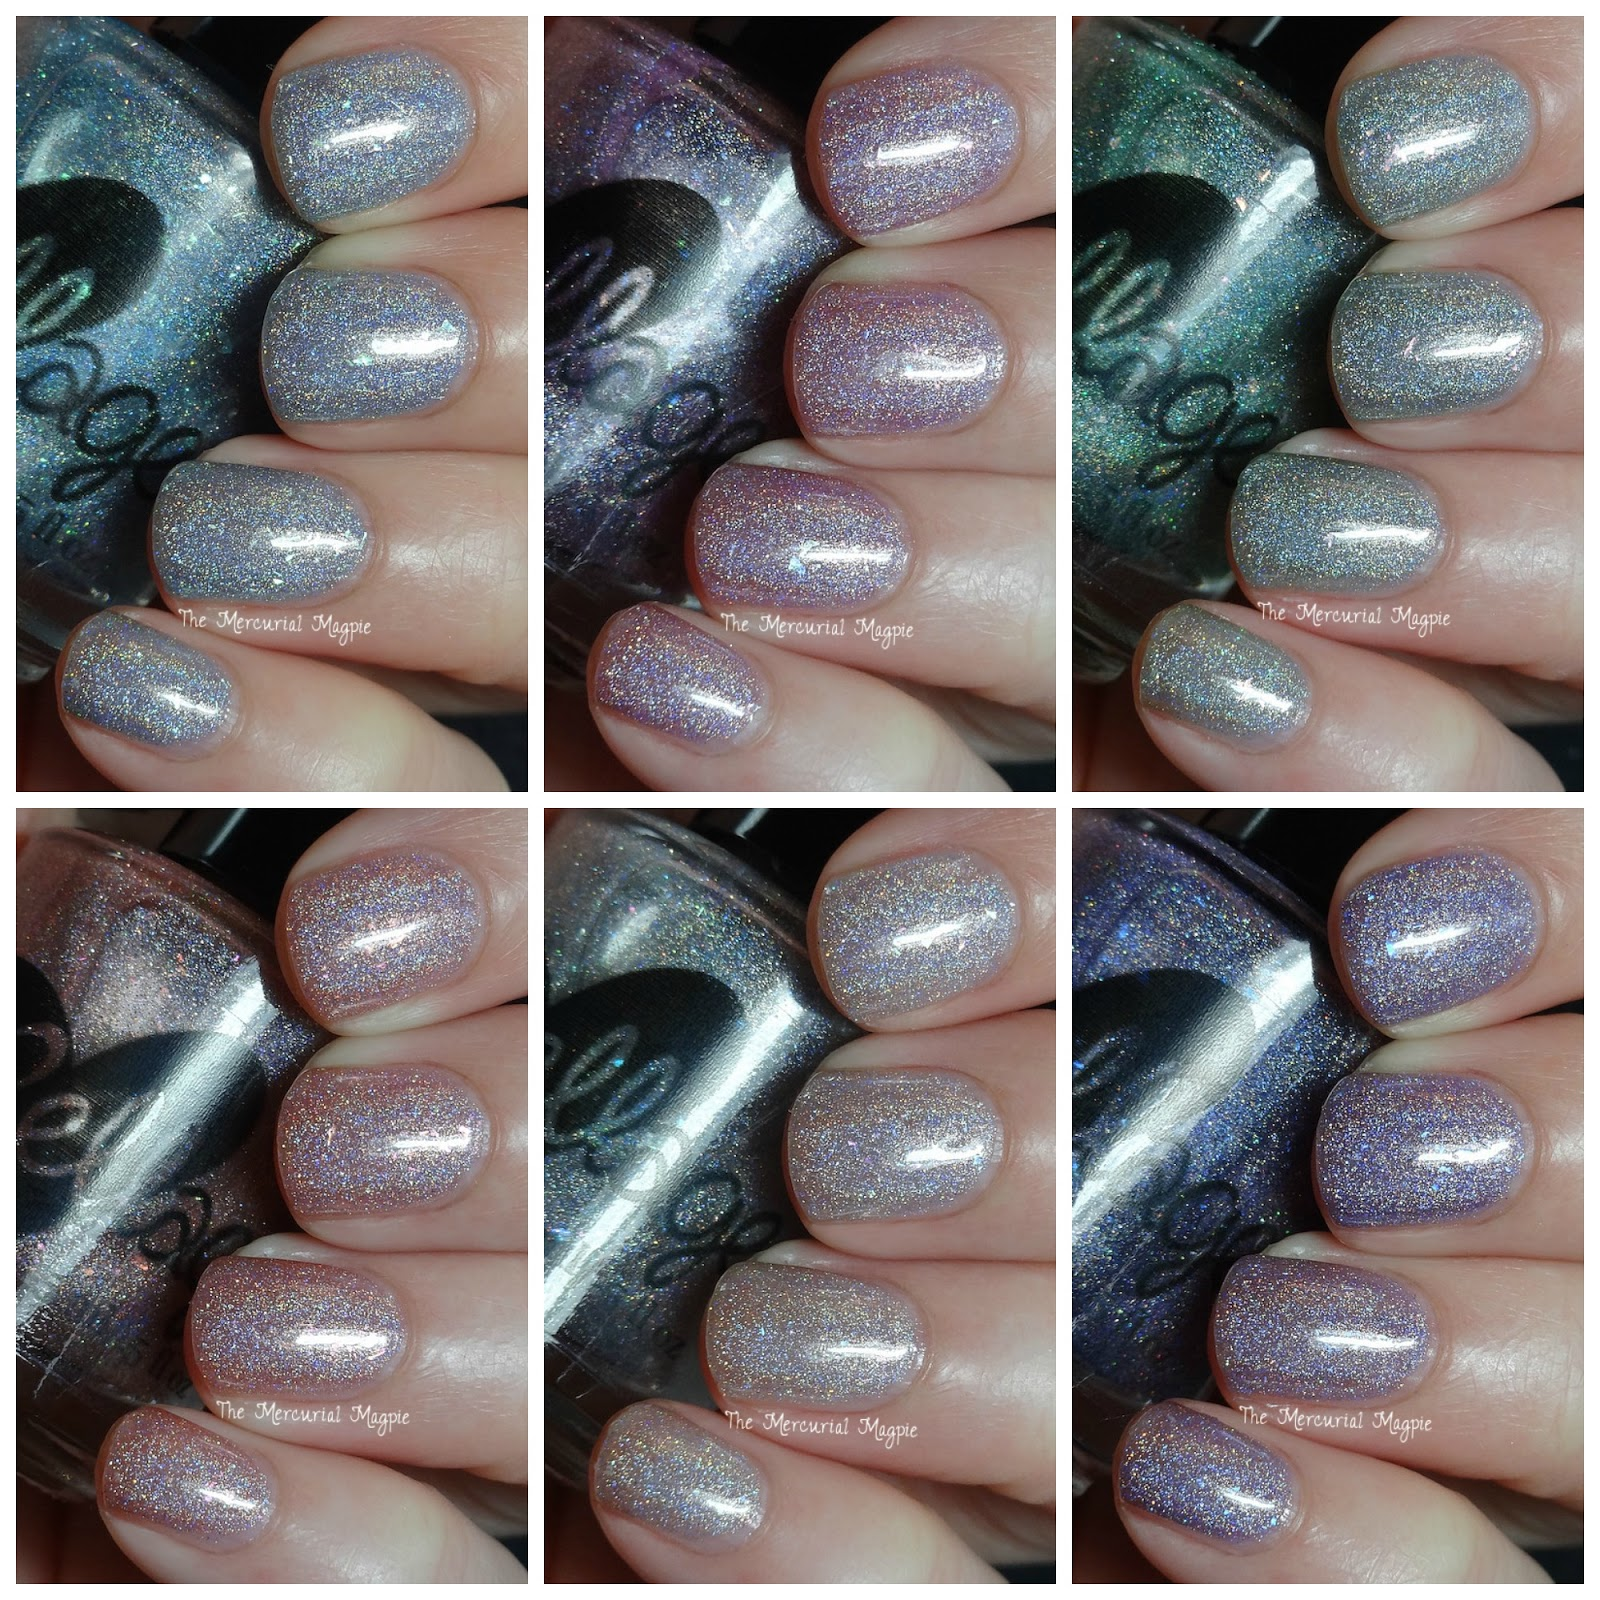 Ellagee Faerie Princesses Collection Swatches & Review